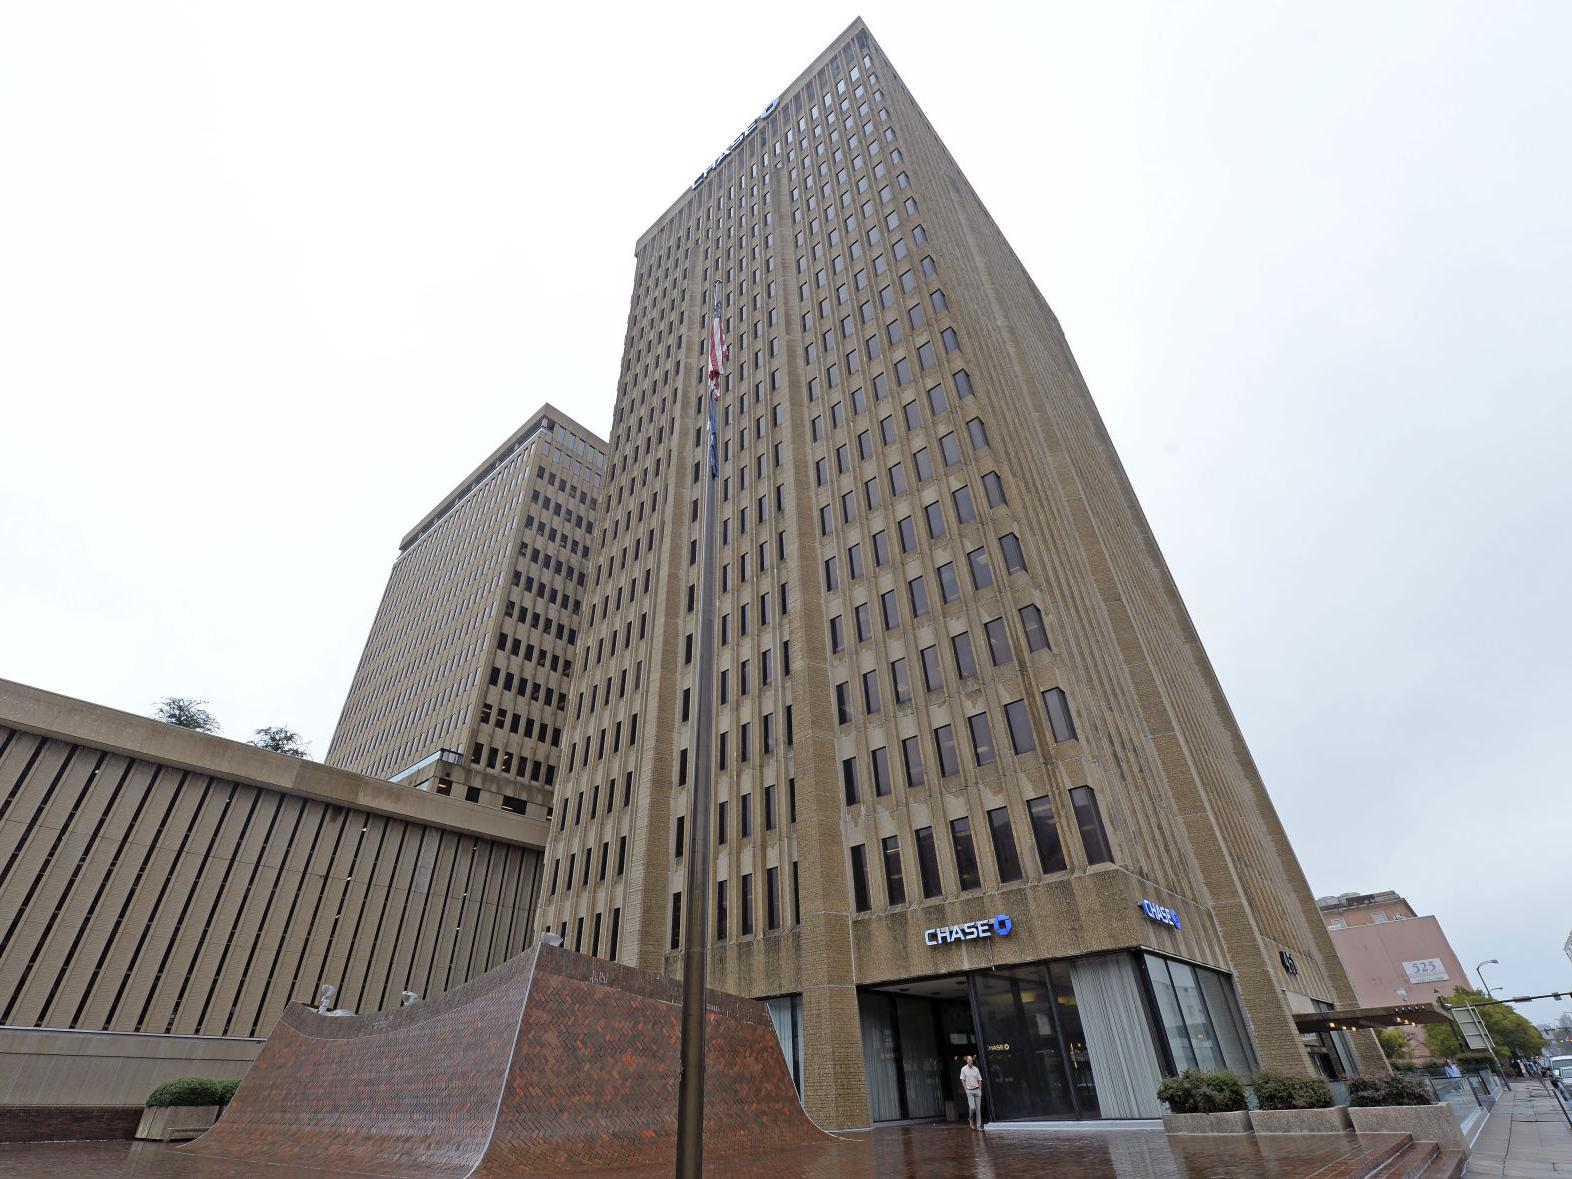 Redevelopment Of Chase South Tower Will Add Up To 150 Apartments To Downtown Baton Rouge Business Theadvocate Com